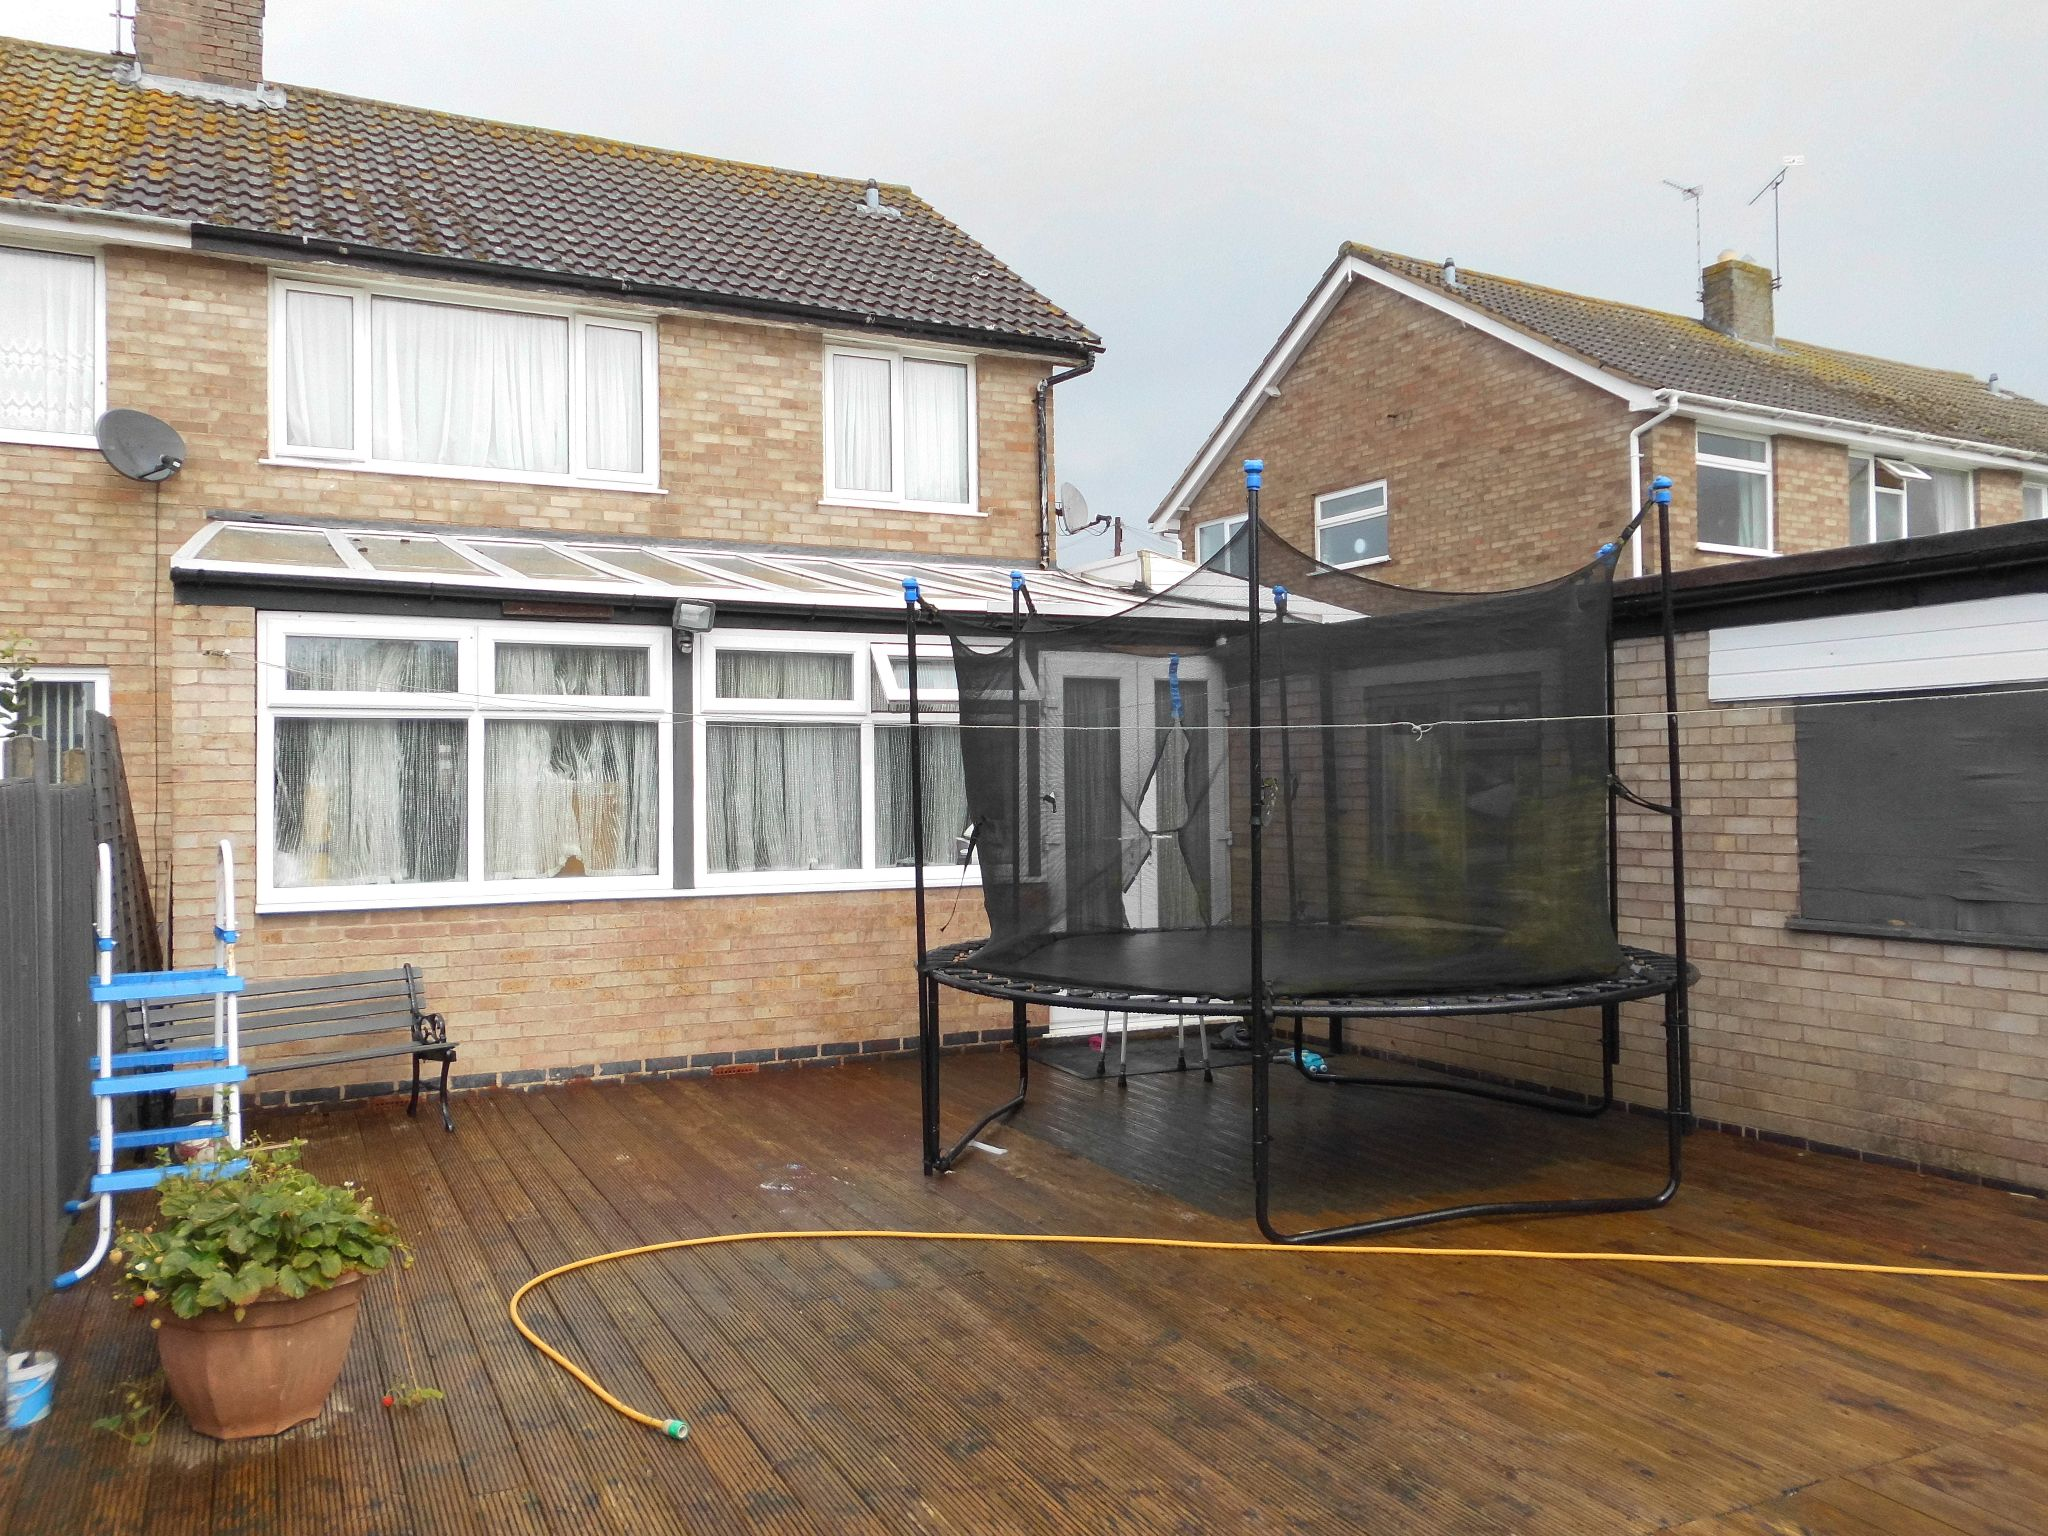 3 bedroom semi-detached house For Sale in Oadby And Wigston - Photograph 13.